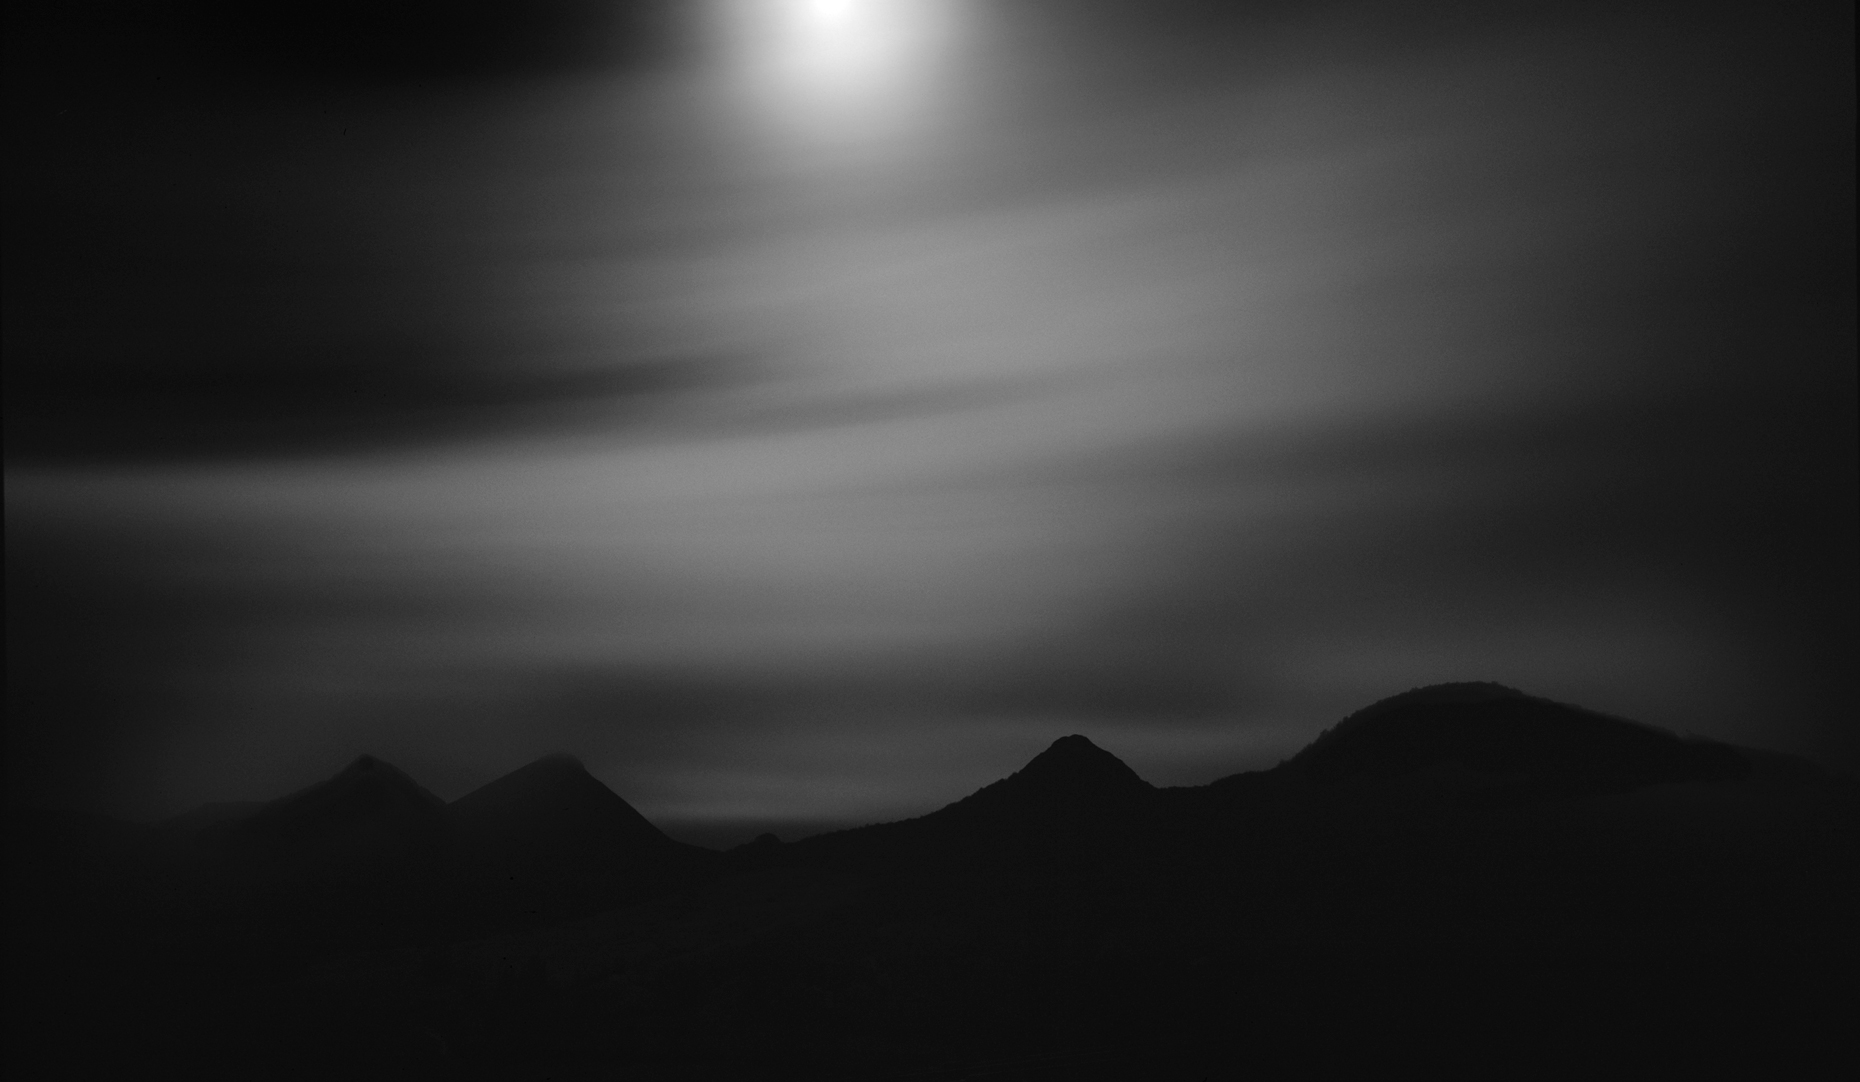 Jon Wyatt Photography - Volcanoes in moonlight, Auvergne, France